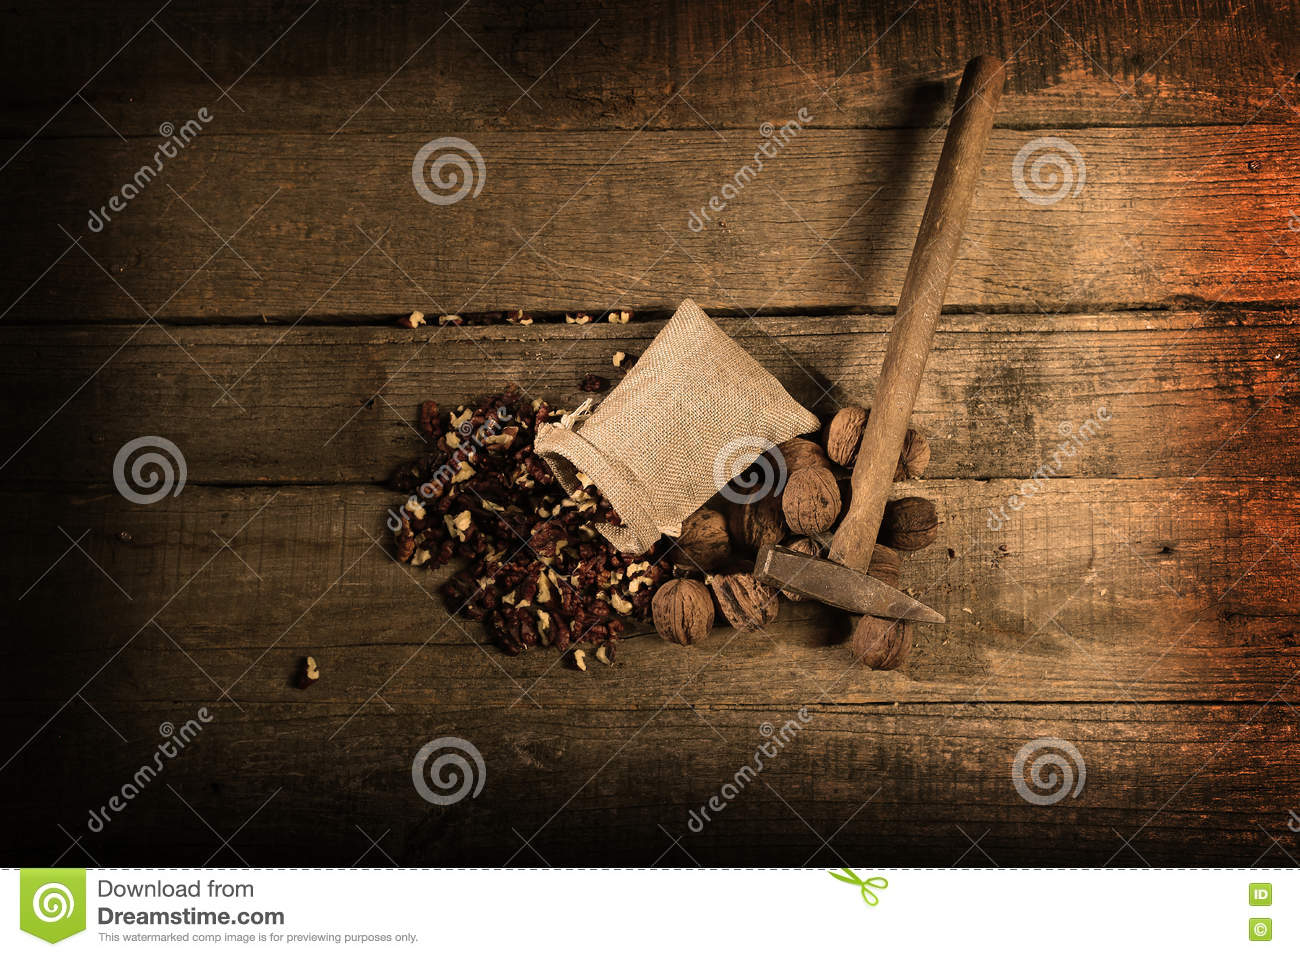 Hammer and nuts stock image  Image of wooden, crack, walnuts